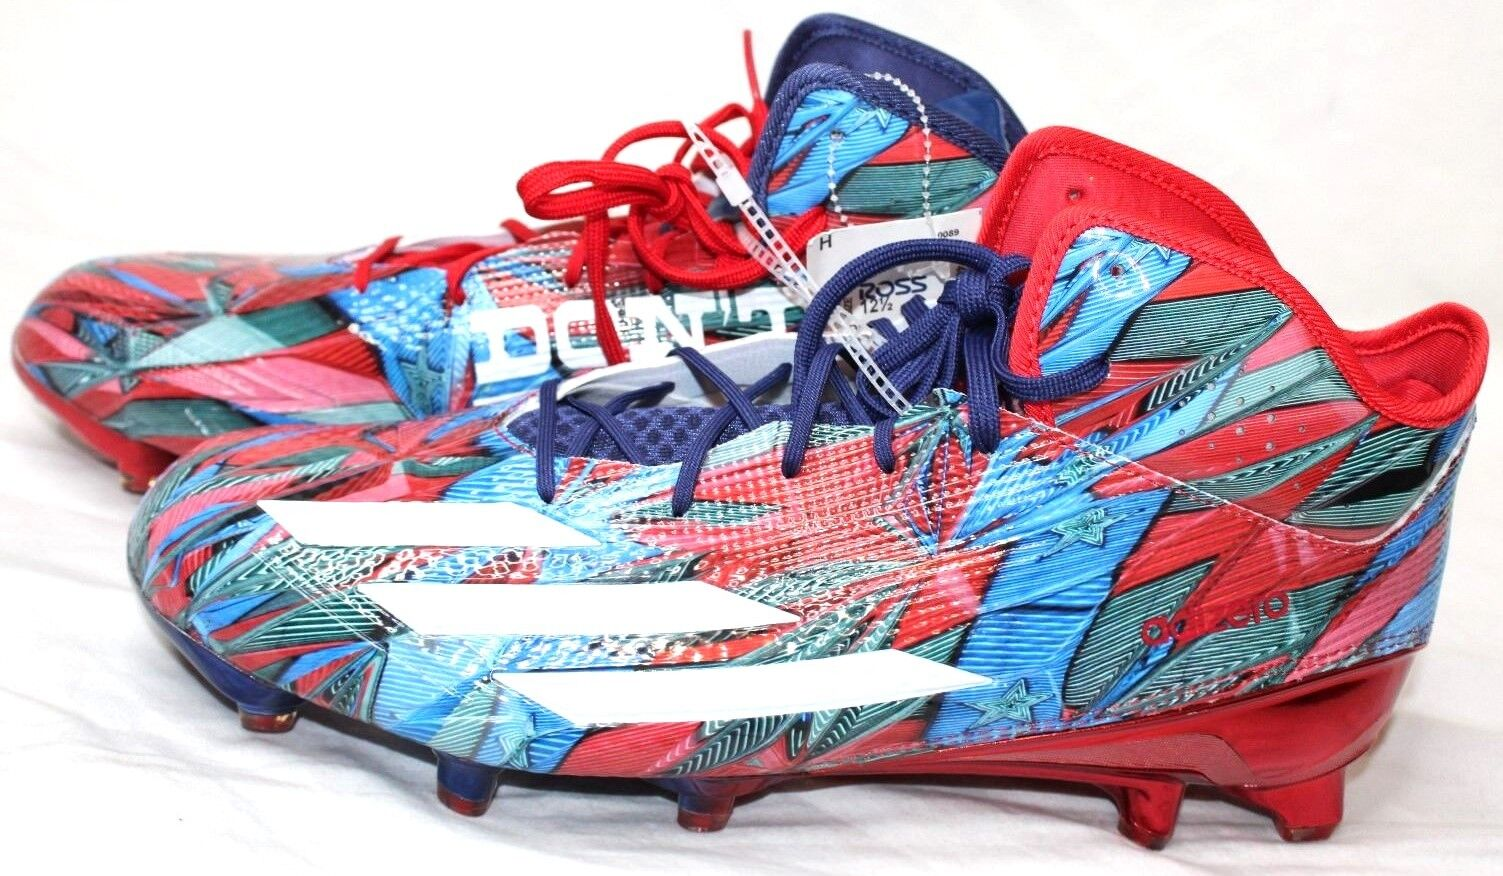 New Adidas 5.0 Don't Mess With Texas Football Cleat Red Blue B42741 Comfortable best-selling model of the brand